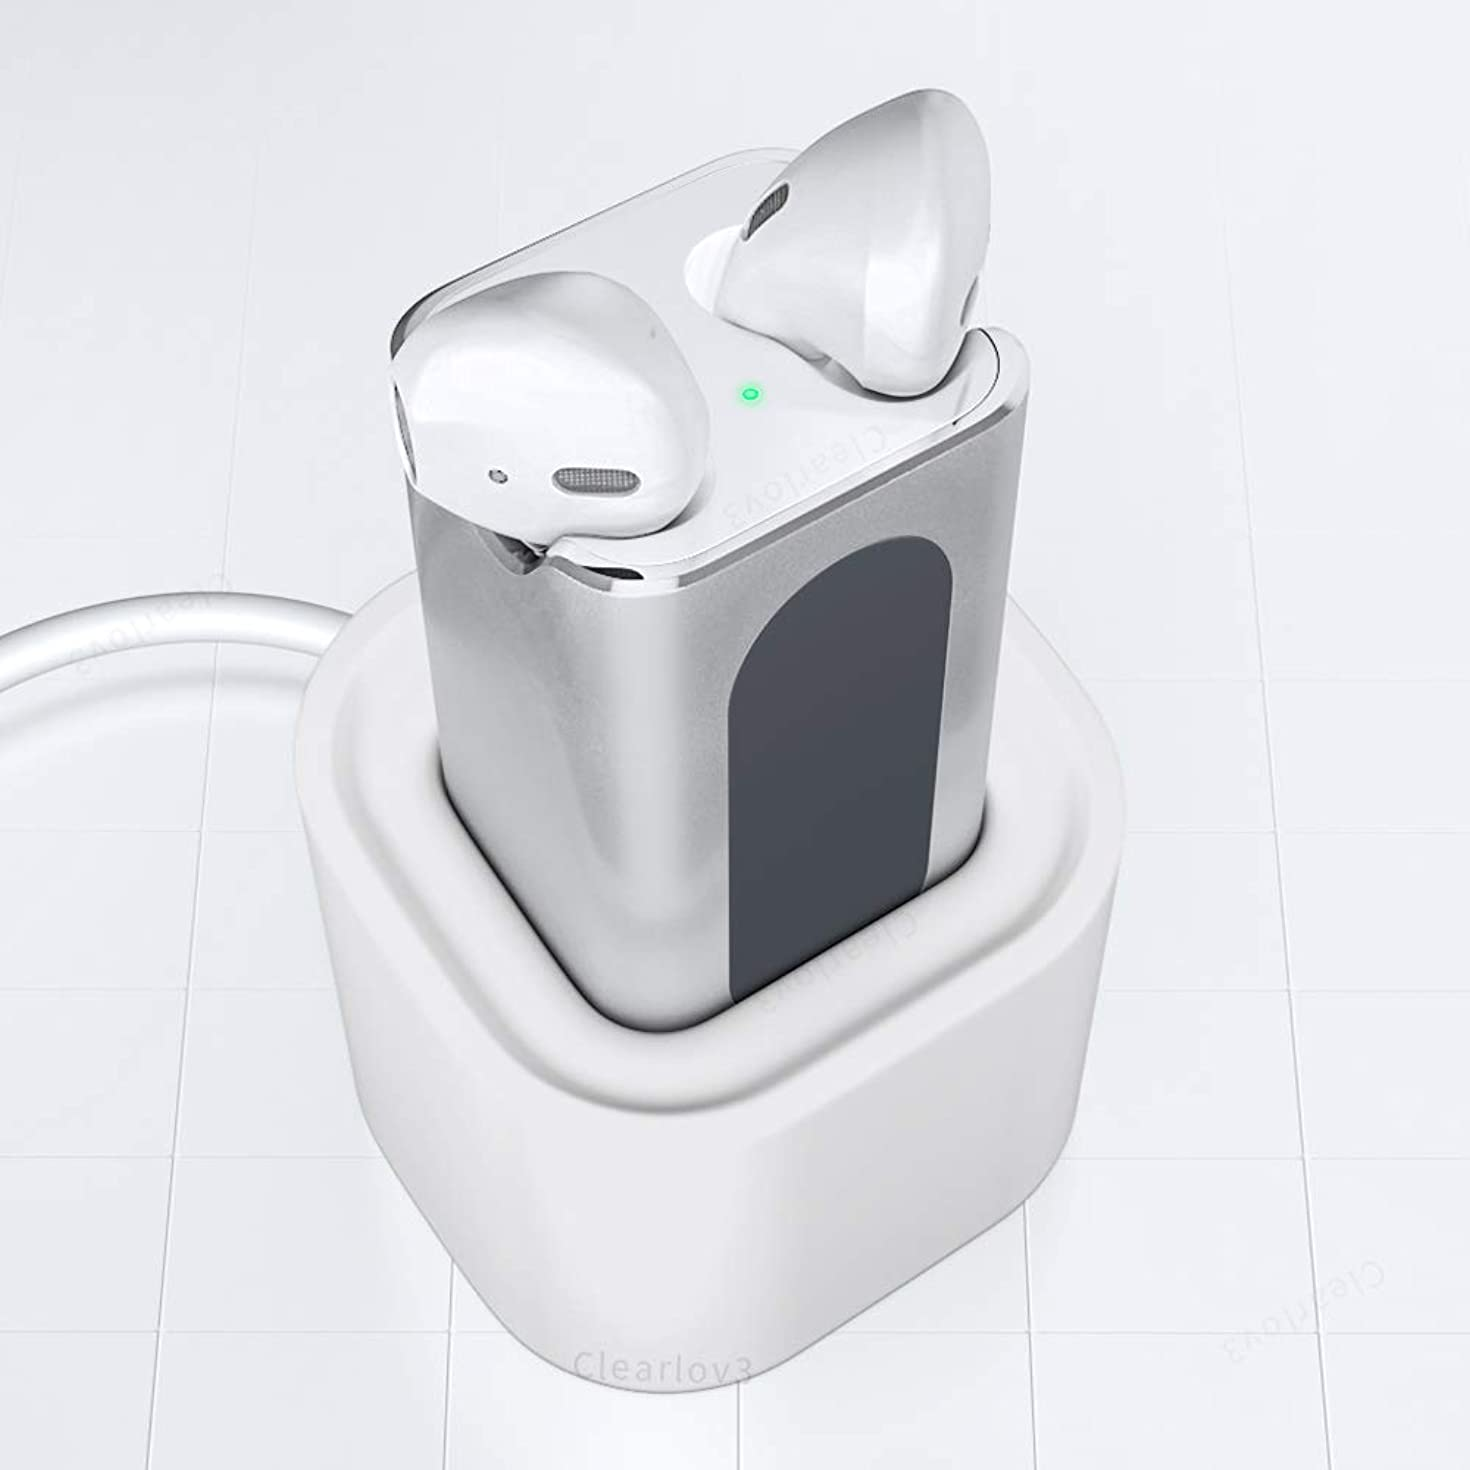 UPSTONE Fastest Charging Adapter Compatible for AirPods, 15 Minutes Fast Charging Adapter Compatible for Air Pods Wireless Headphones Car Charger with Stand Holder